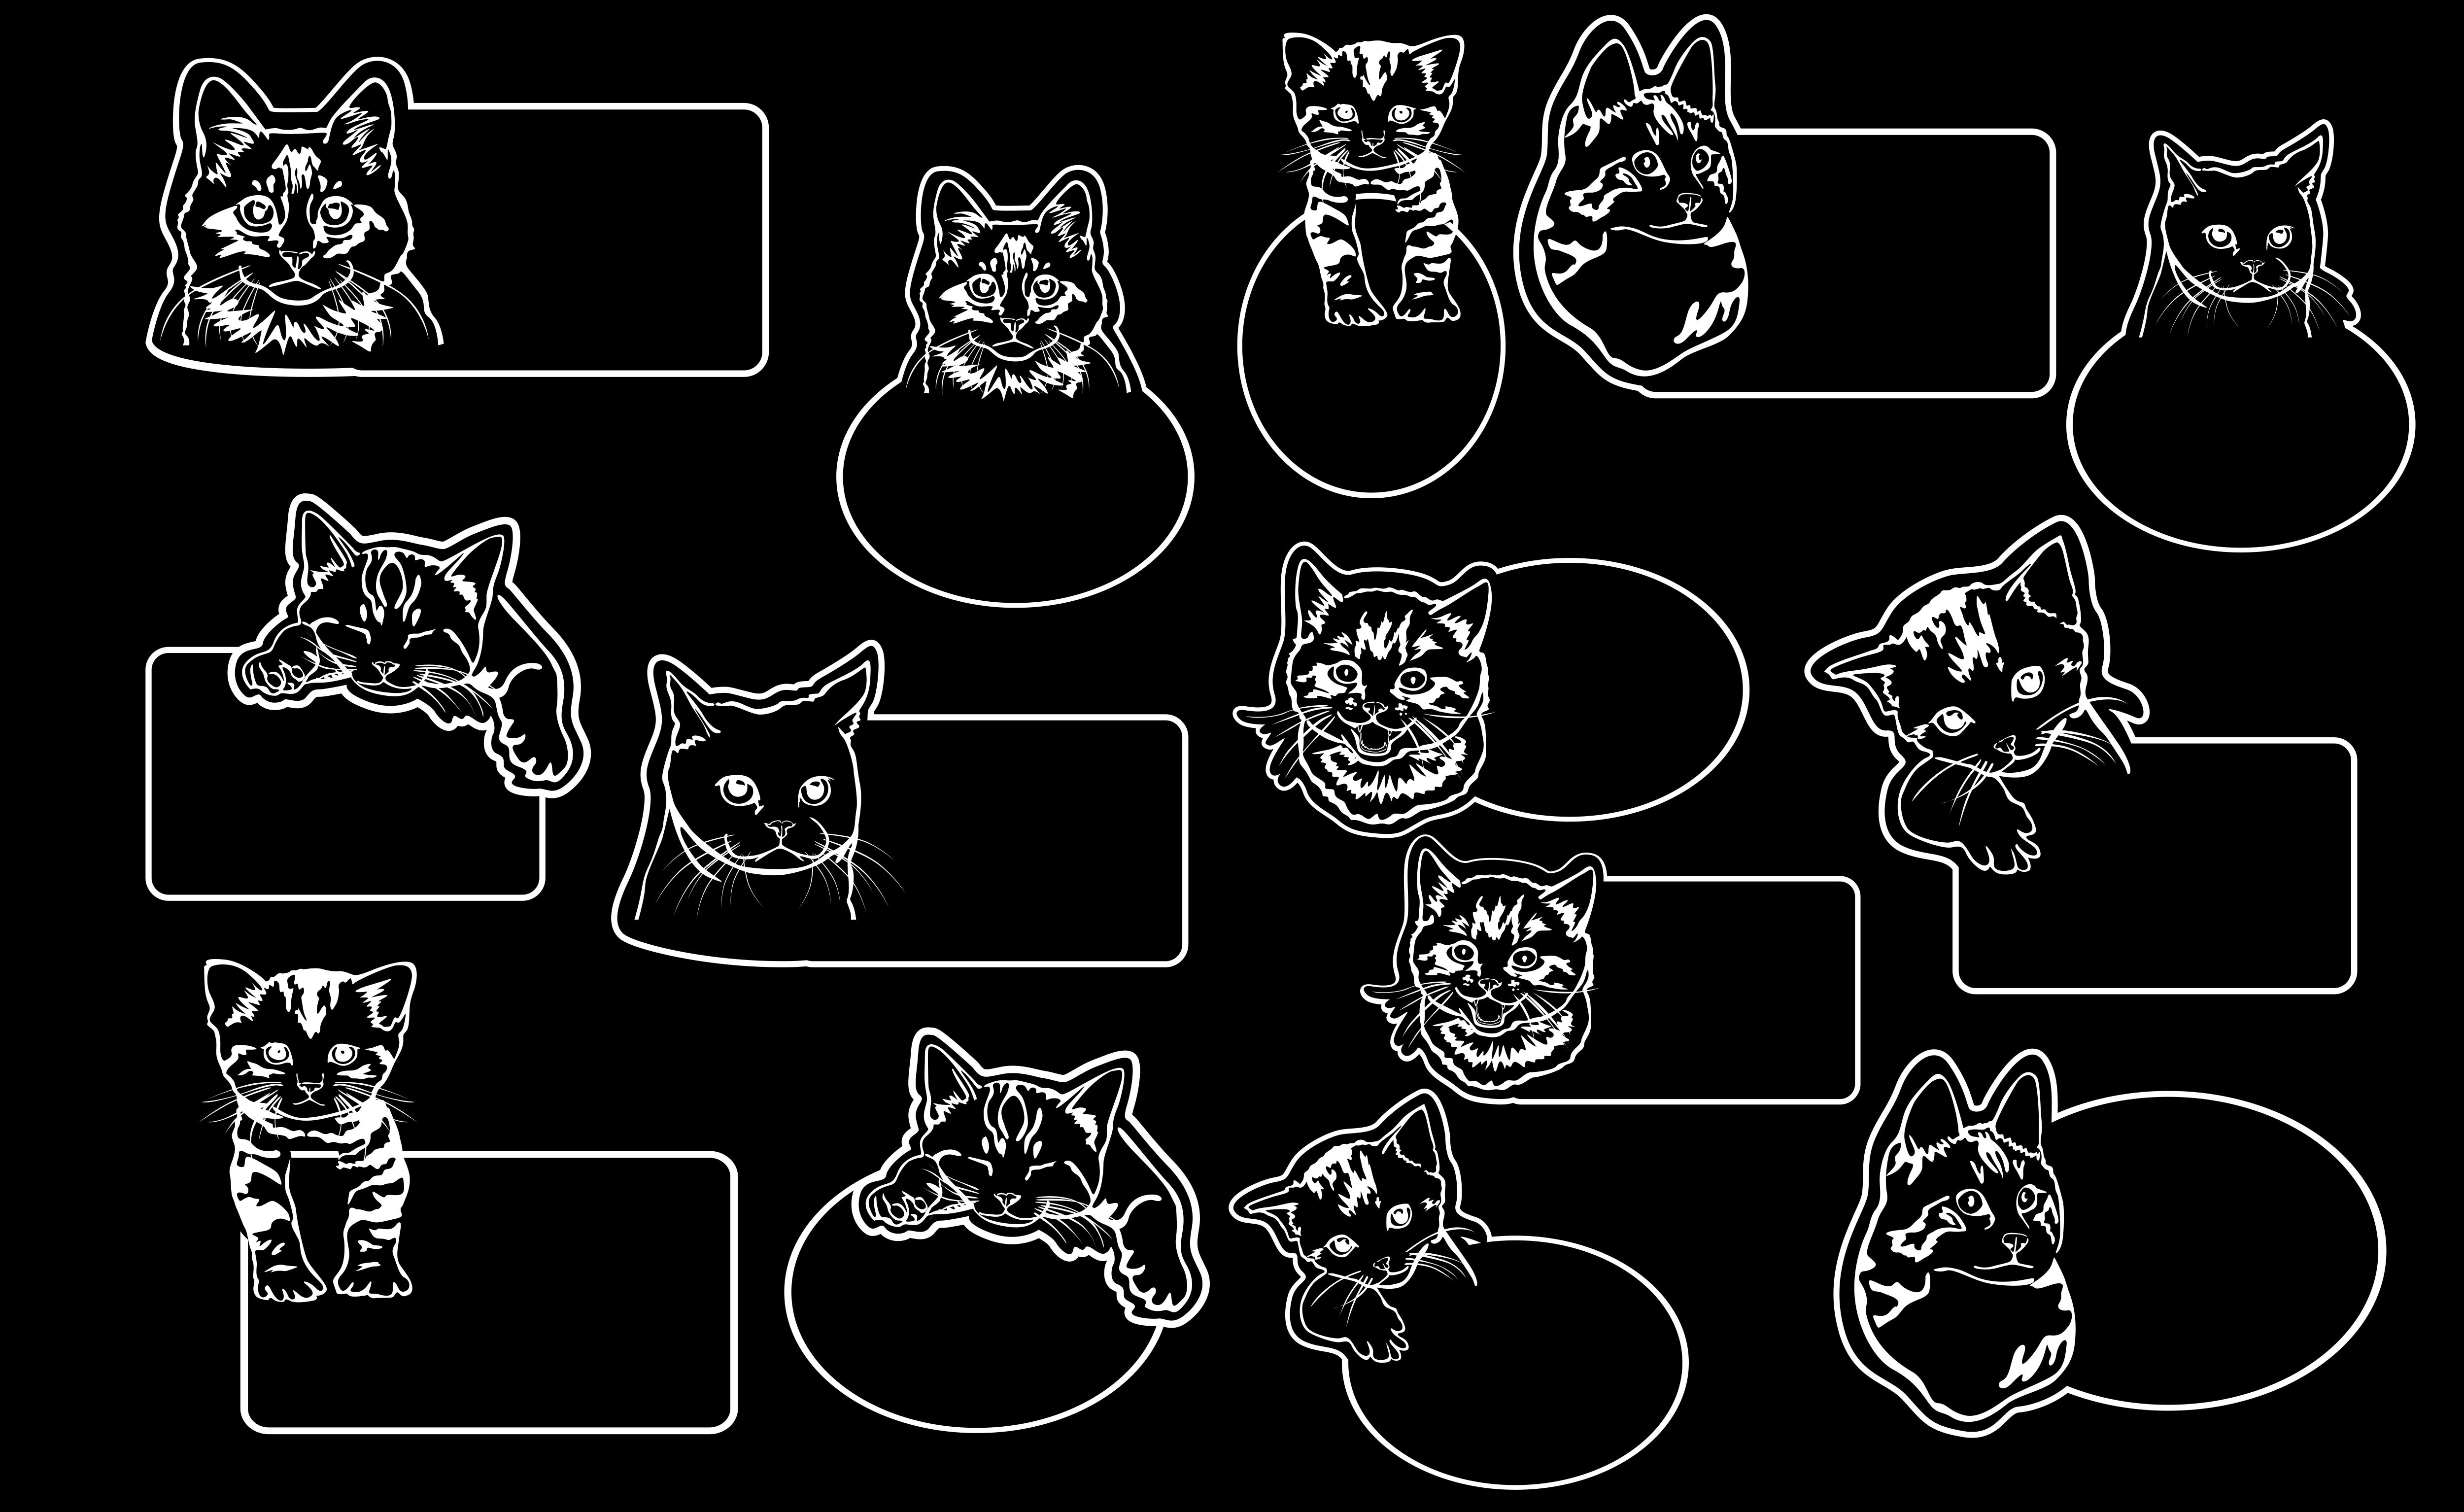 Download Free Cute Cat Face Theme Room Door Hangers Graphic By Arief Sapta for Cricut Explore, Silhouette and other cutting machines.